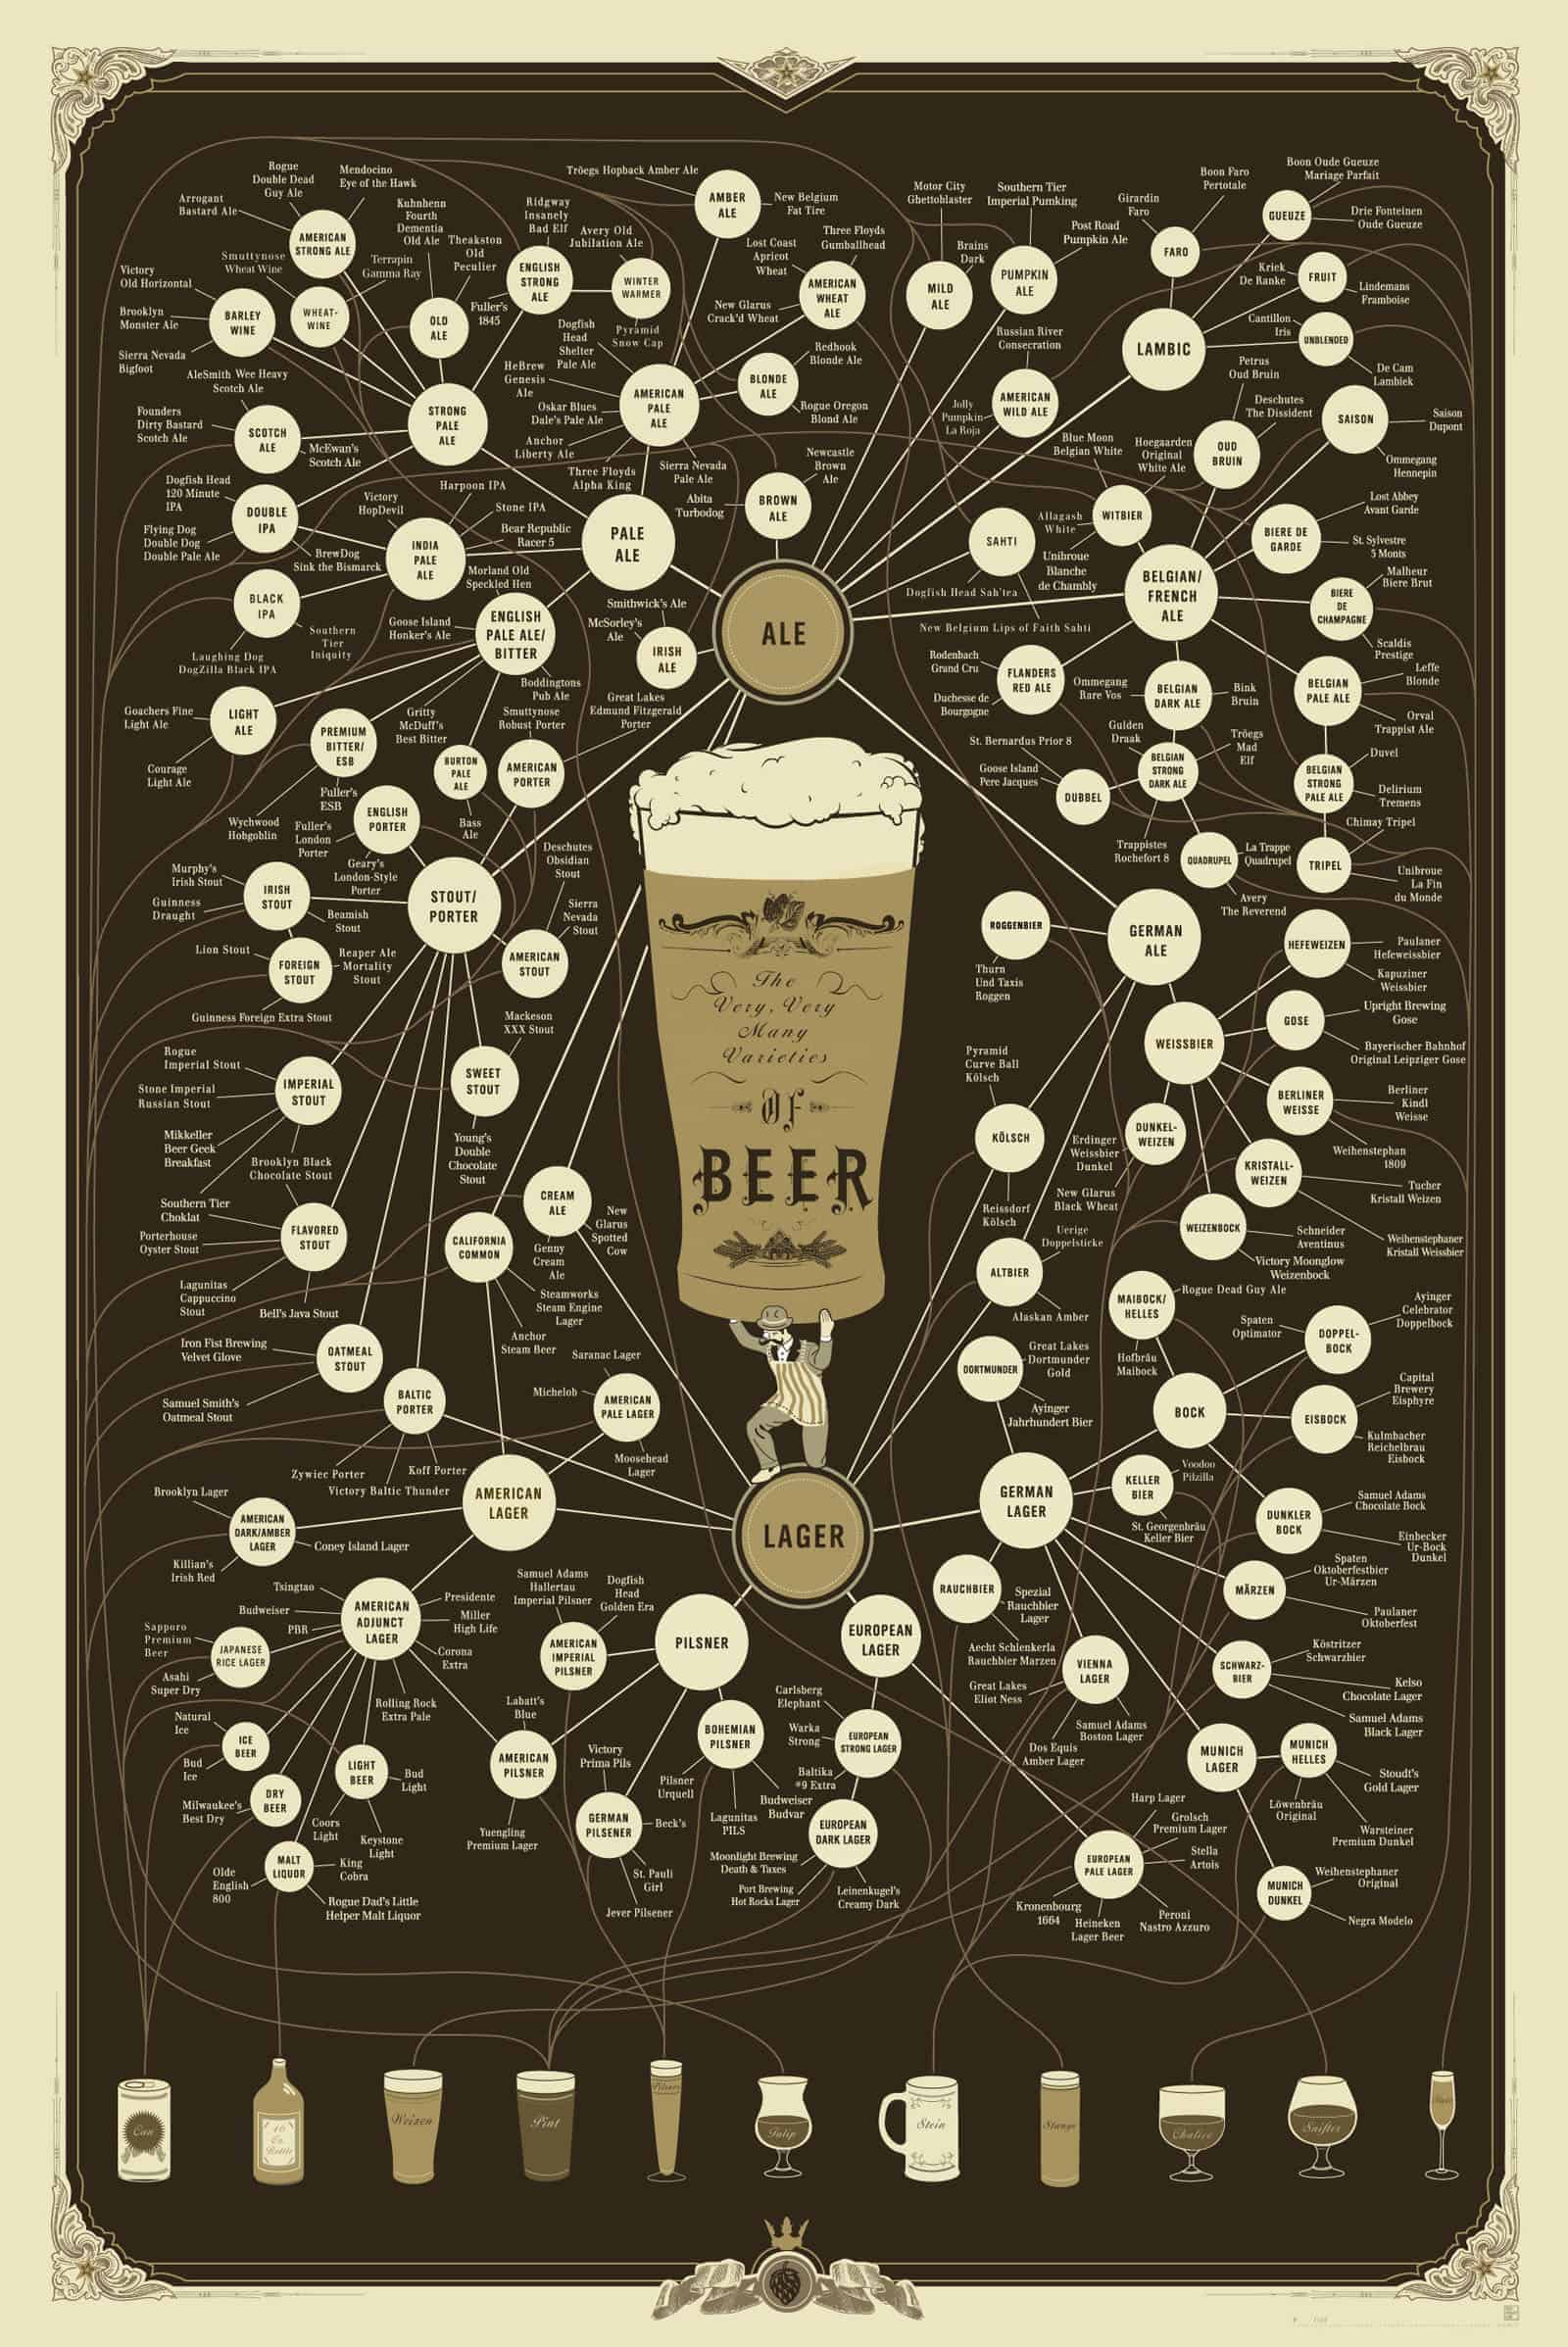 bjcp beer classification